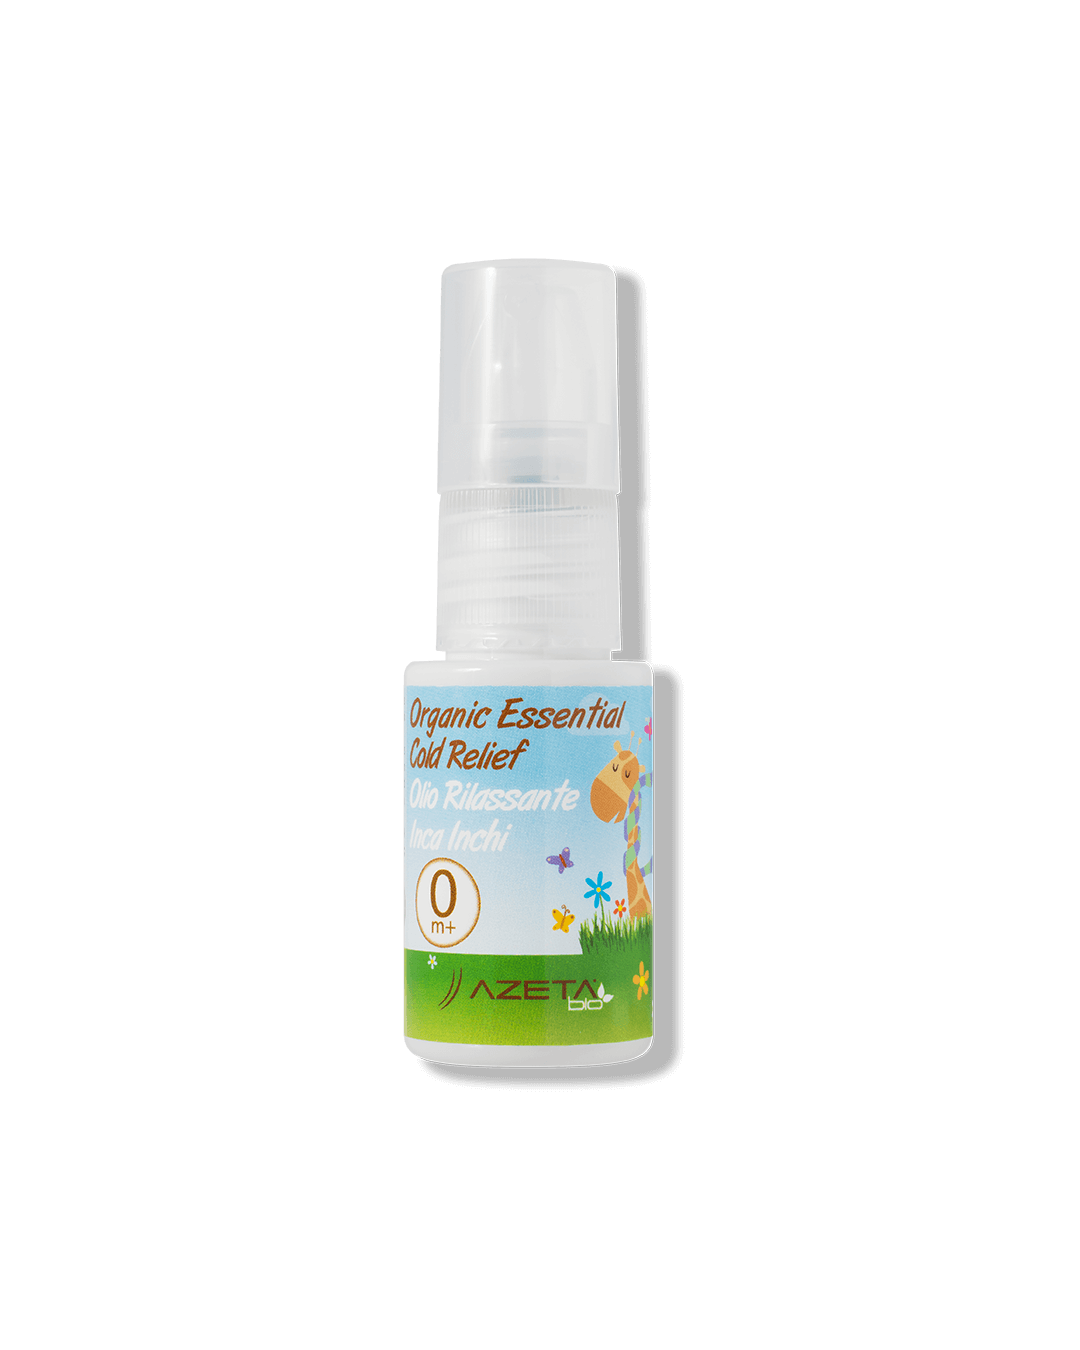 Organic Essential Cold Relief